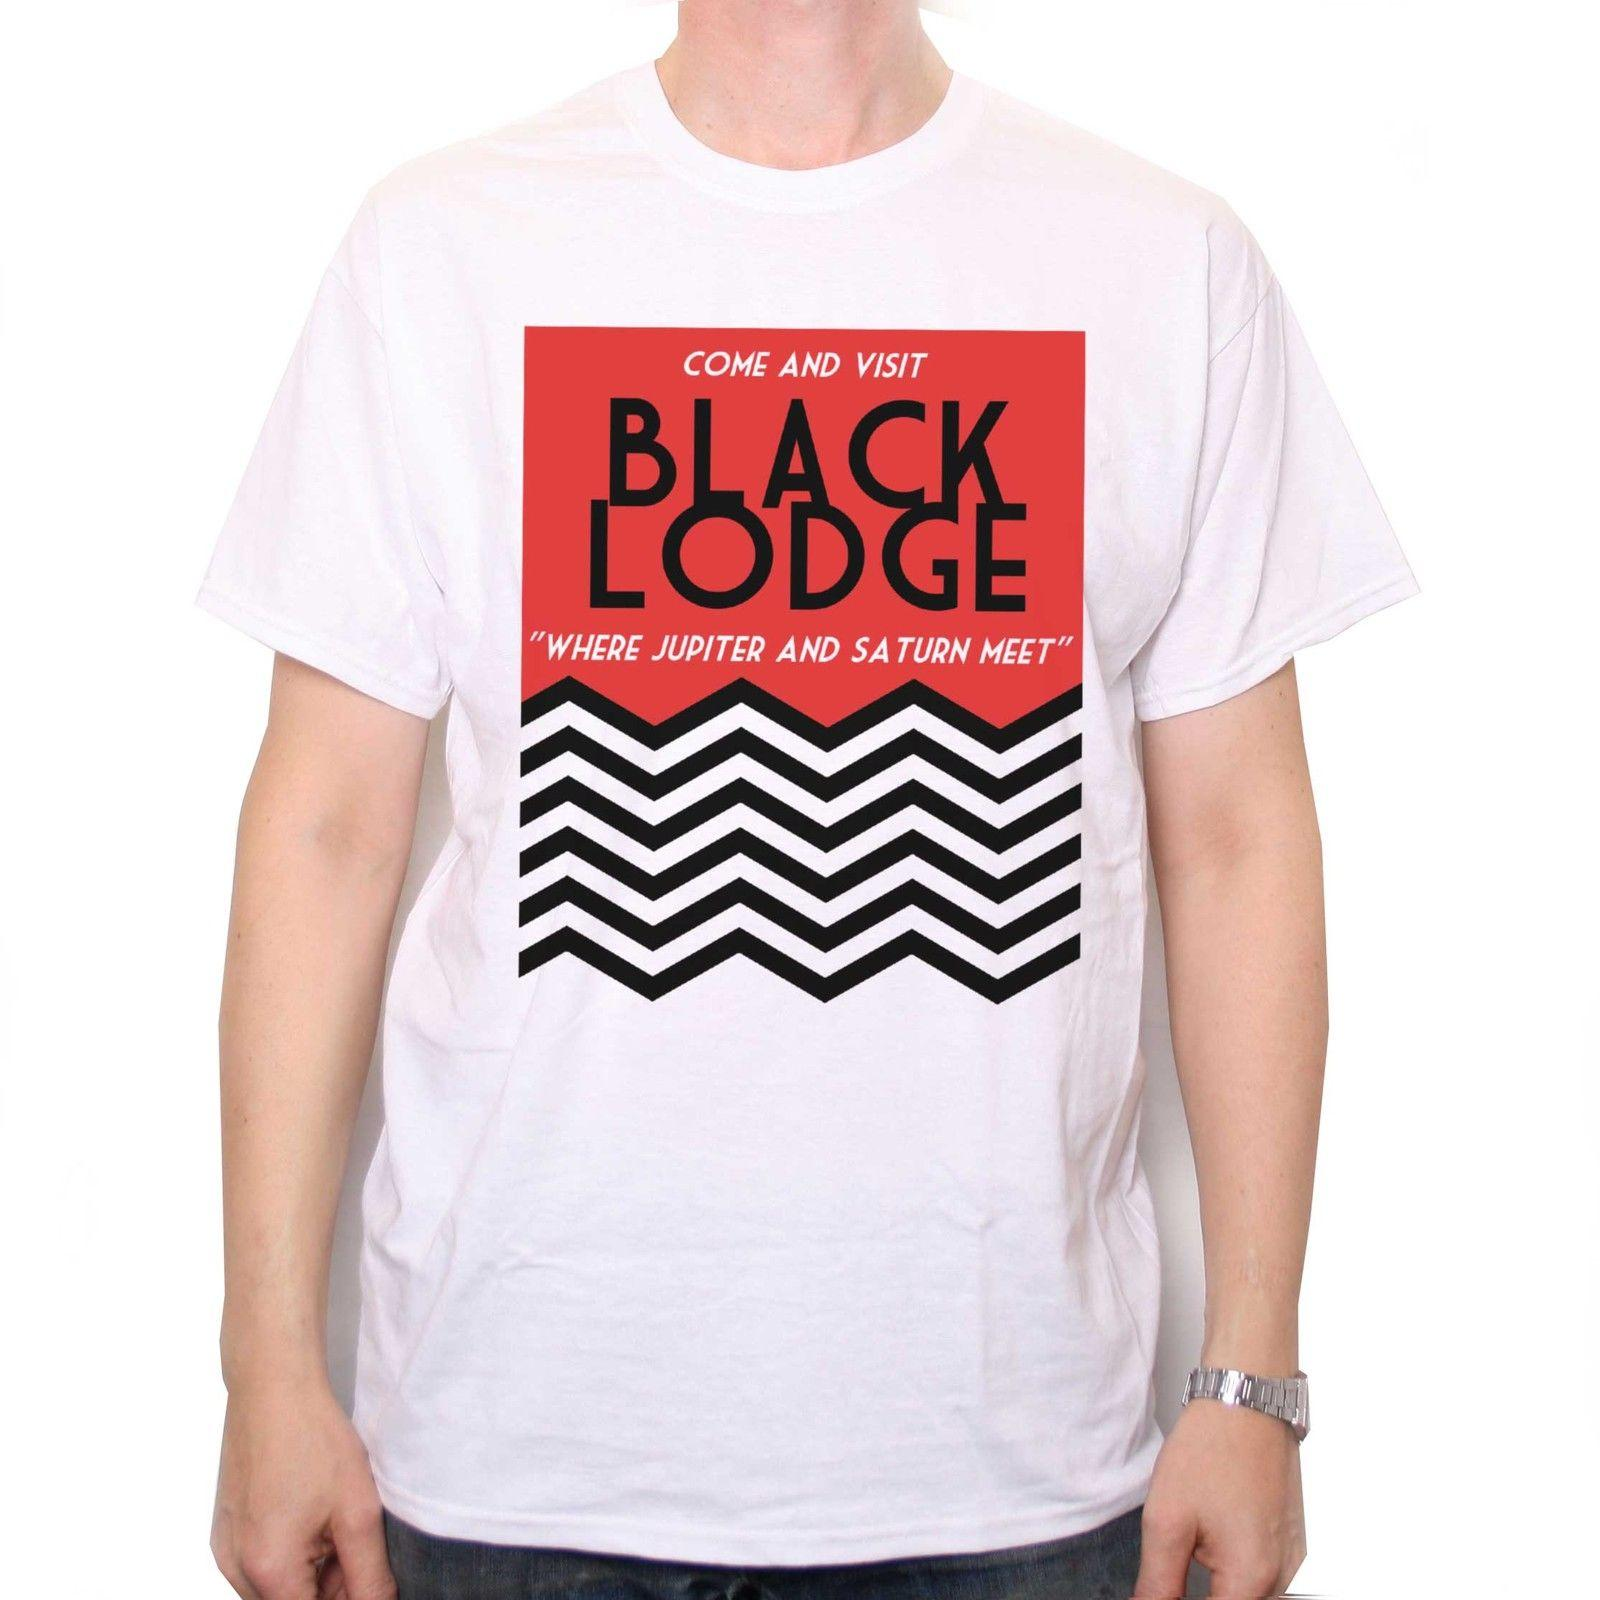 6c799ecf INSPIRED BY TWIN PEAKS T SHIRT BLACK LODGE POSTER CULT TV T SHIRT 100%  Cotton Short Sleeve, O Neck T Shirt,Top Tee Basic, Cool T Shirts For Boys  Online Cool ...